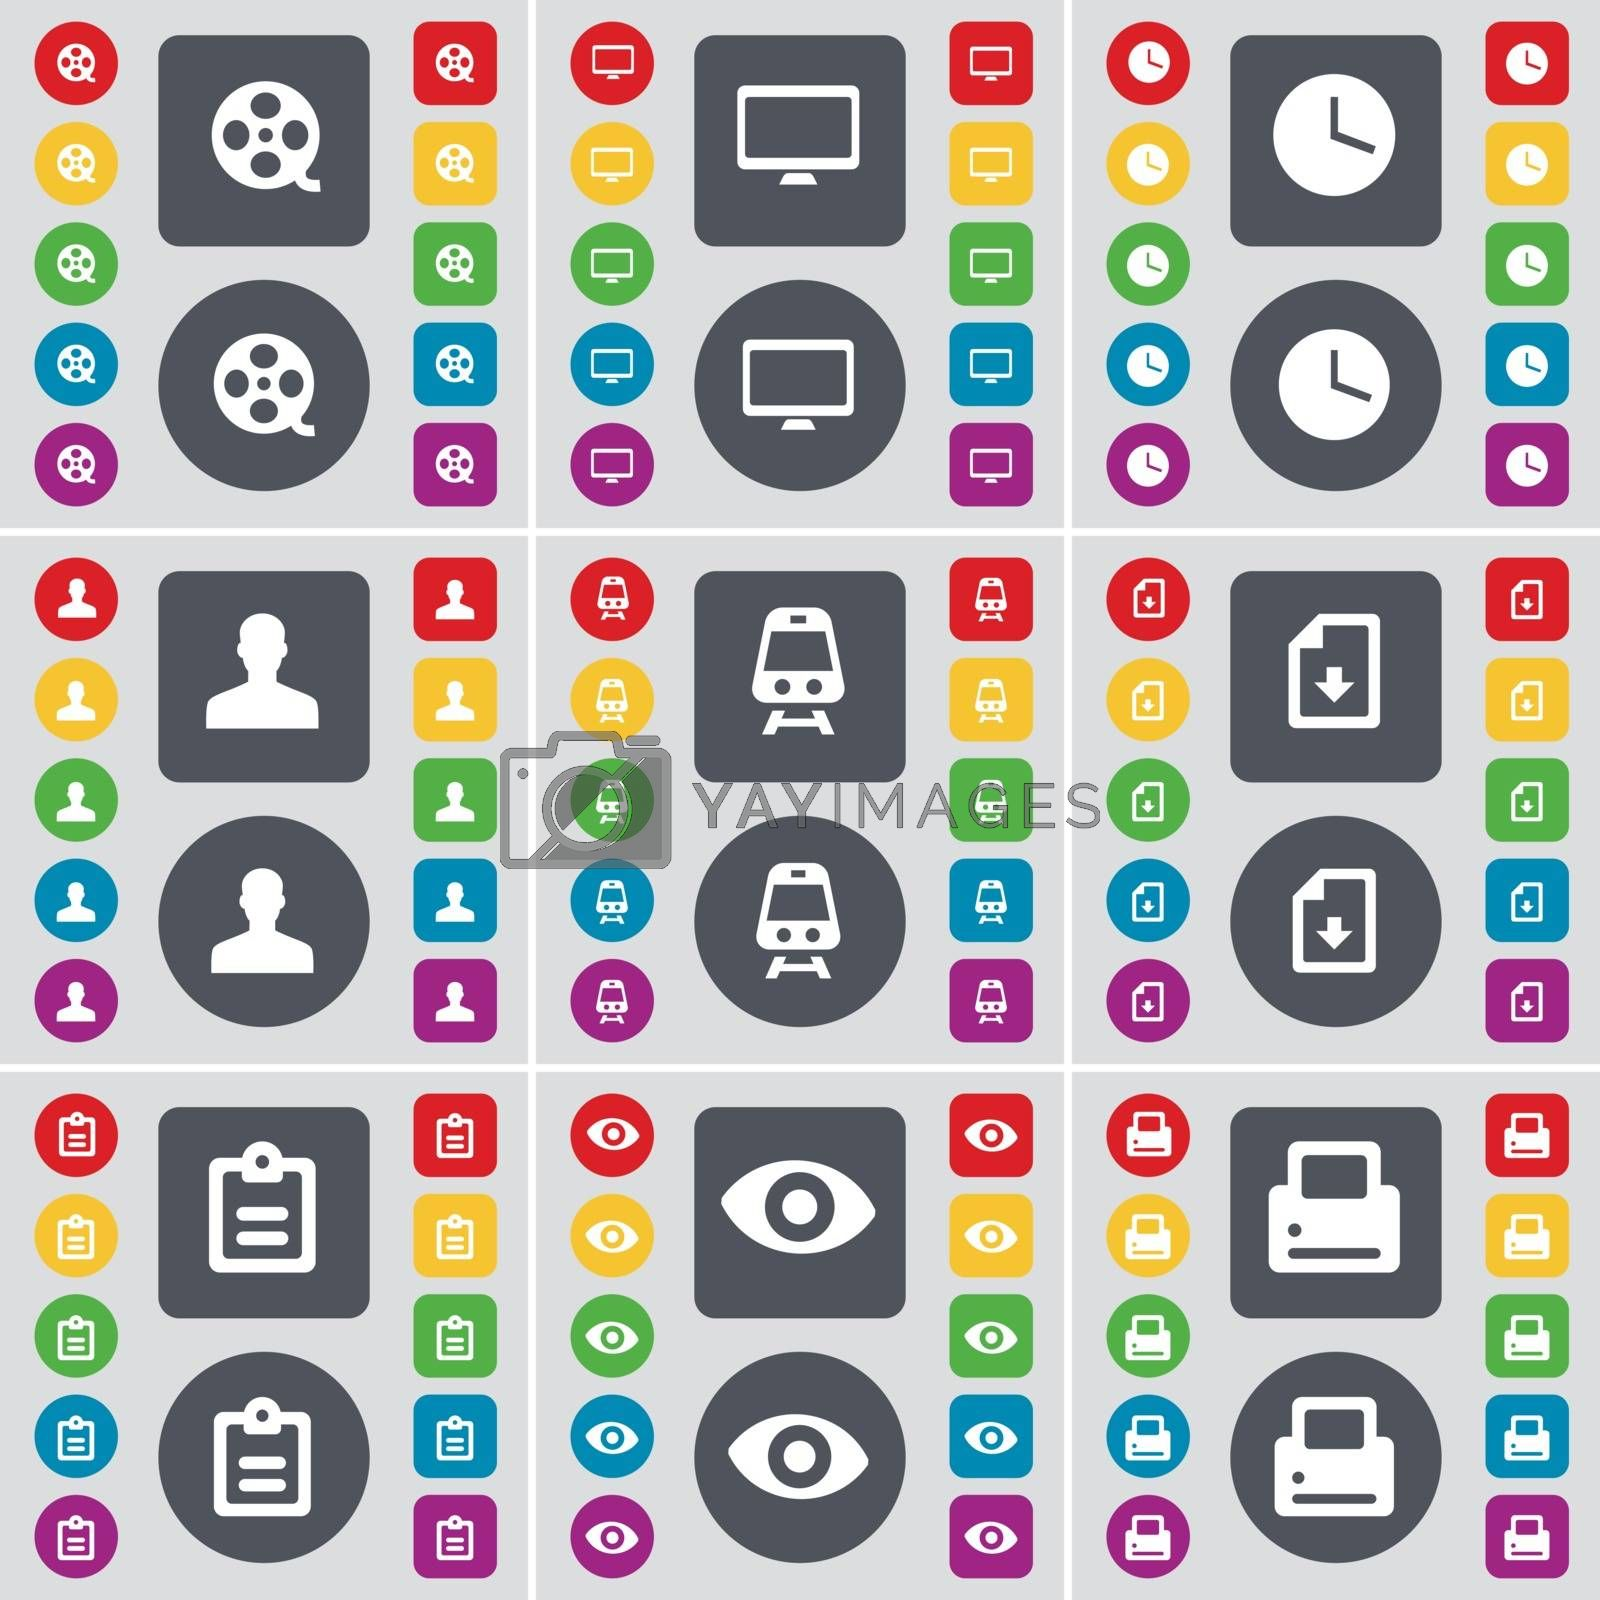 Royalty free image of Videotape, Monitor, Clock, Avatar, Train, File, Survey, Vision, Printer icon symbol. A large set of flat, colored buttons for your design. Vector by serhii_lohvyniuk